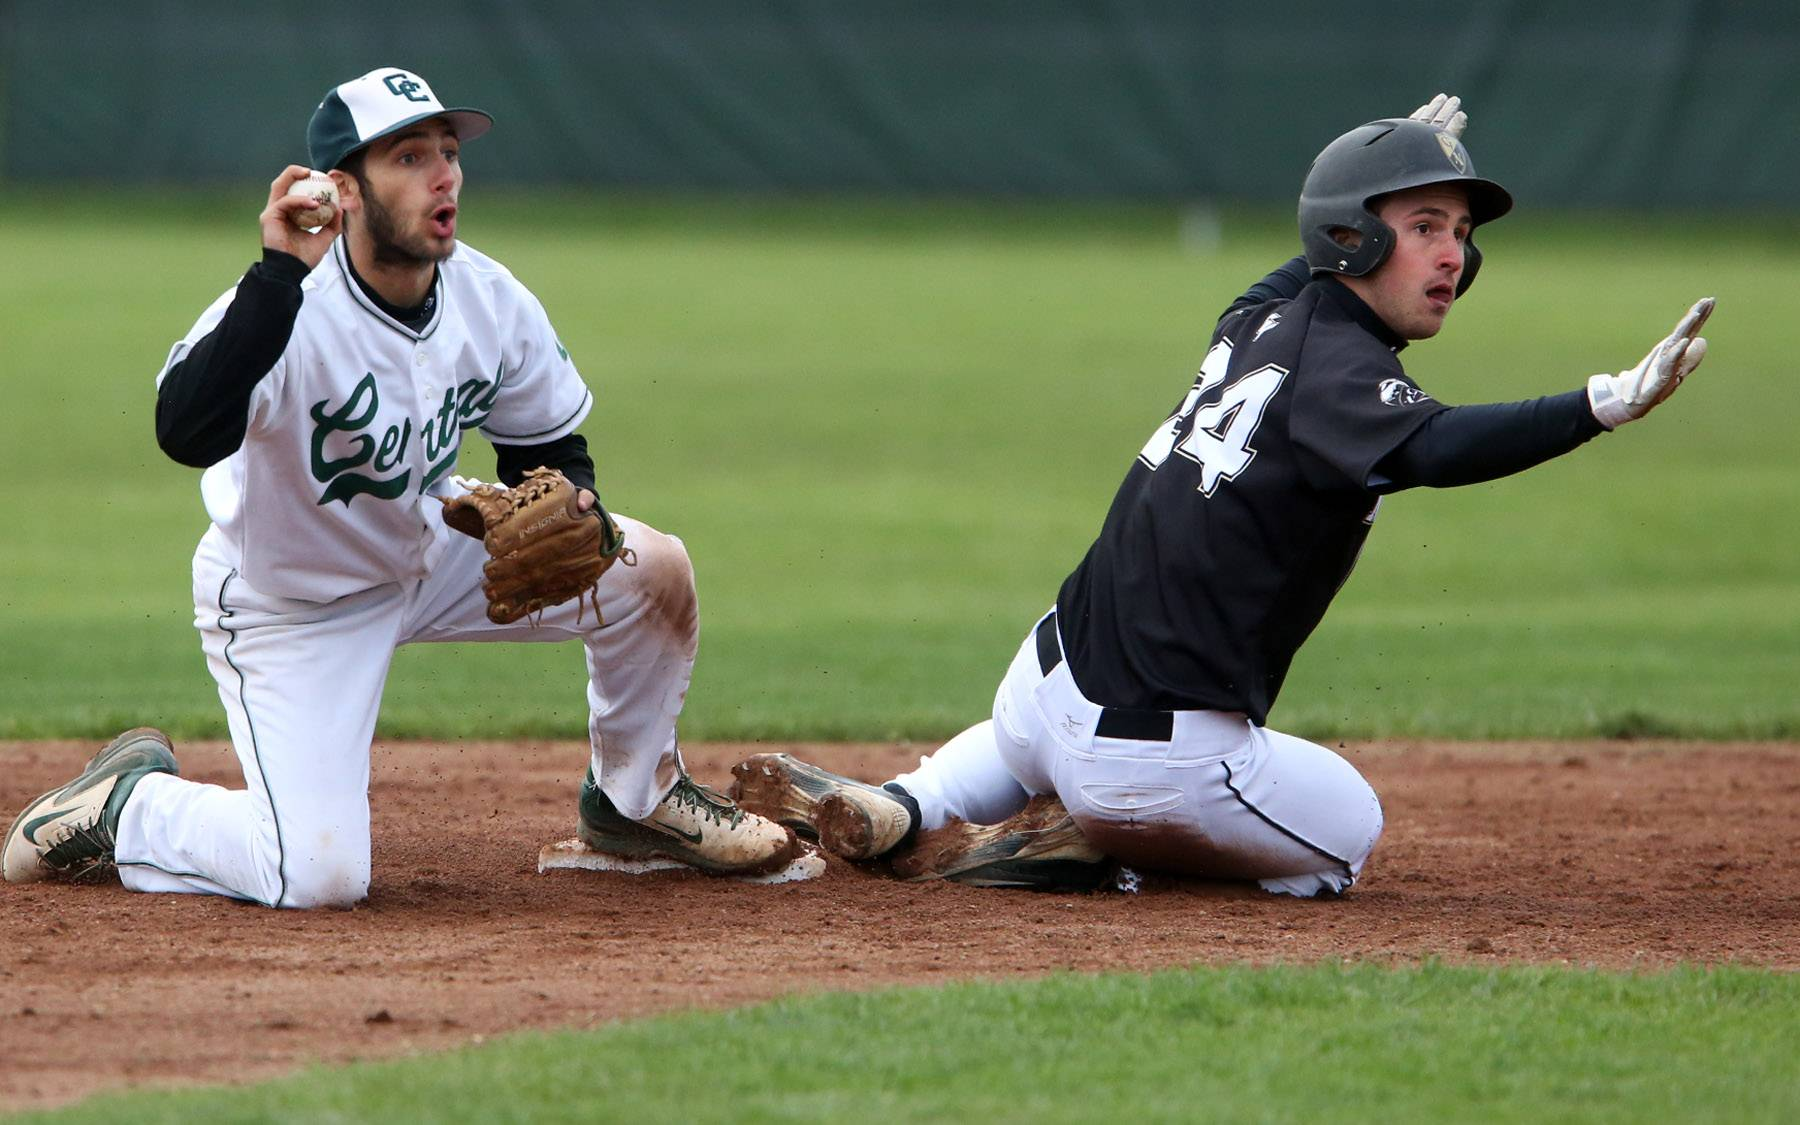 Grayslake North's Andrew Mikusa is called out after Grayslake Central second baseman Jay Hoffmann was able to scoop up a dropped ball on Friday at Grayslake Central.